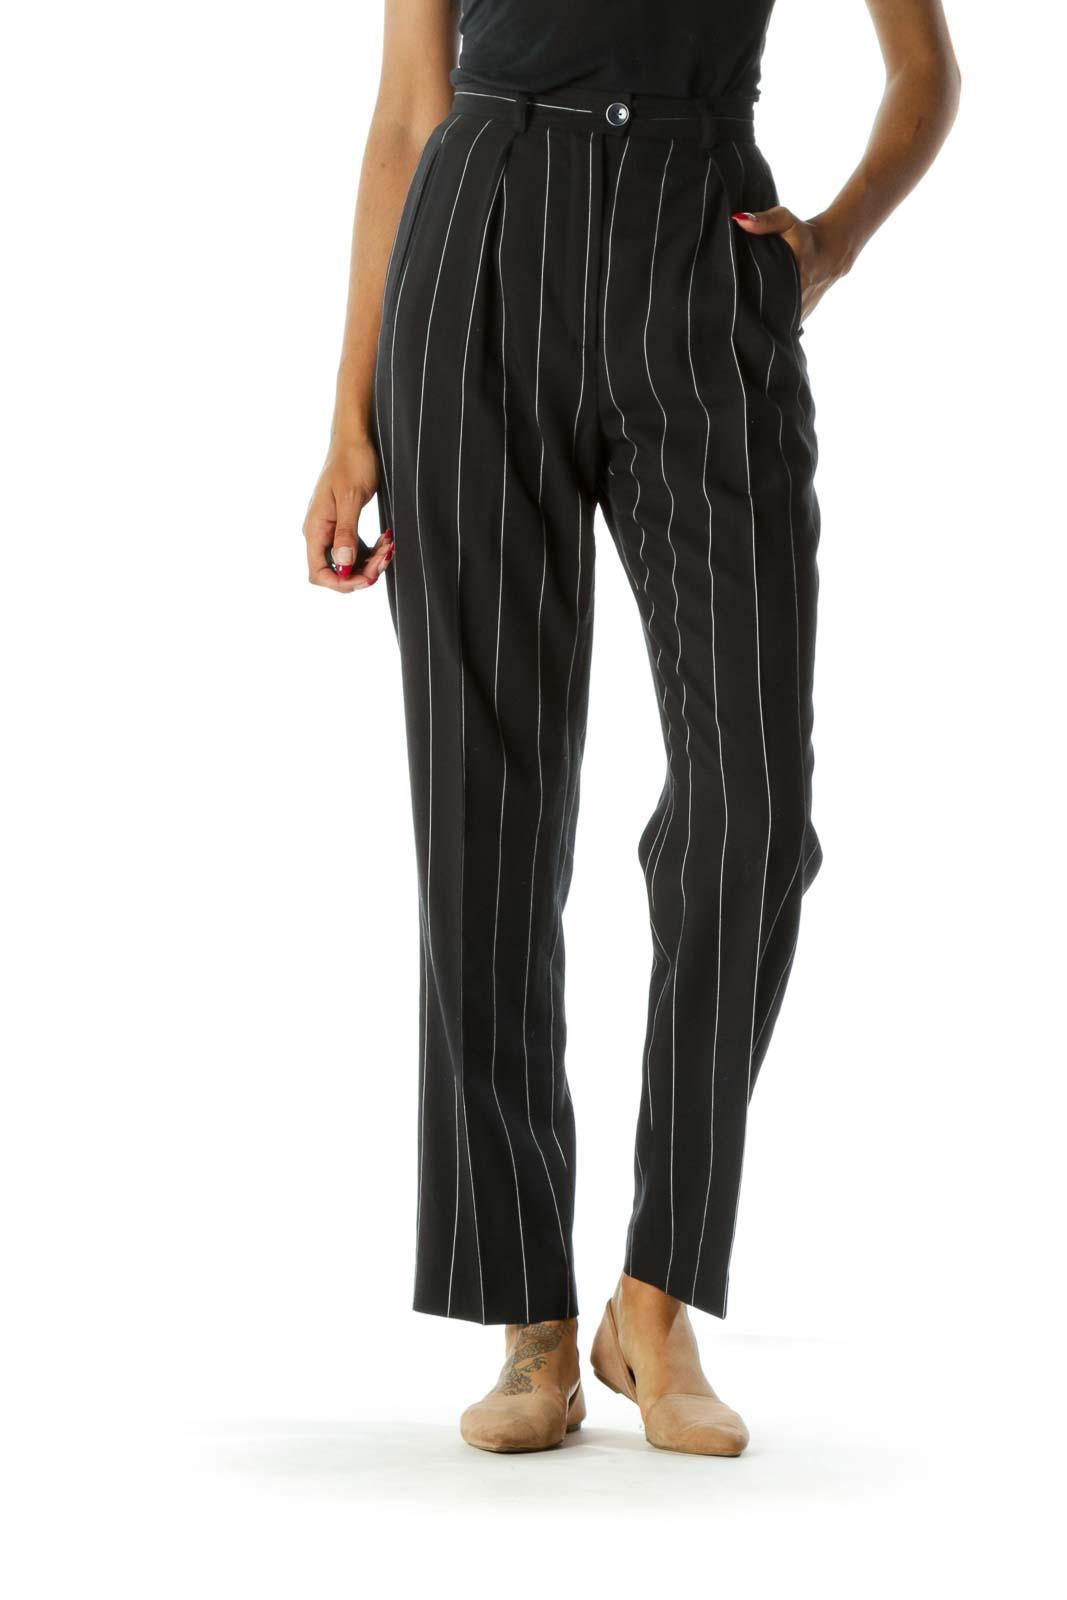 Navy & White Pinstripe 100% Pure Wool Designer High-Waisted Pants